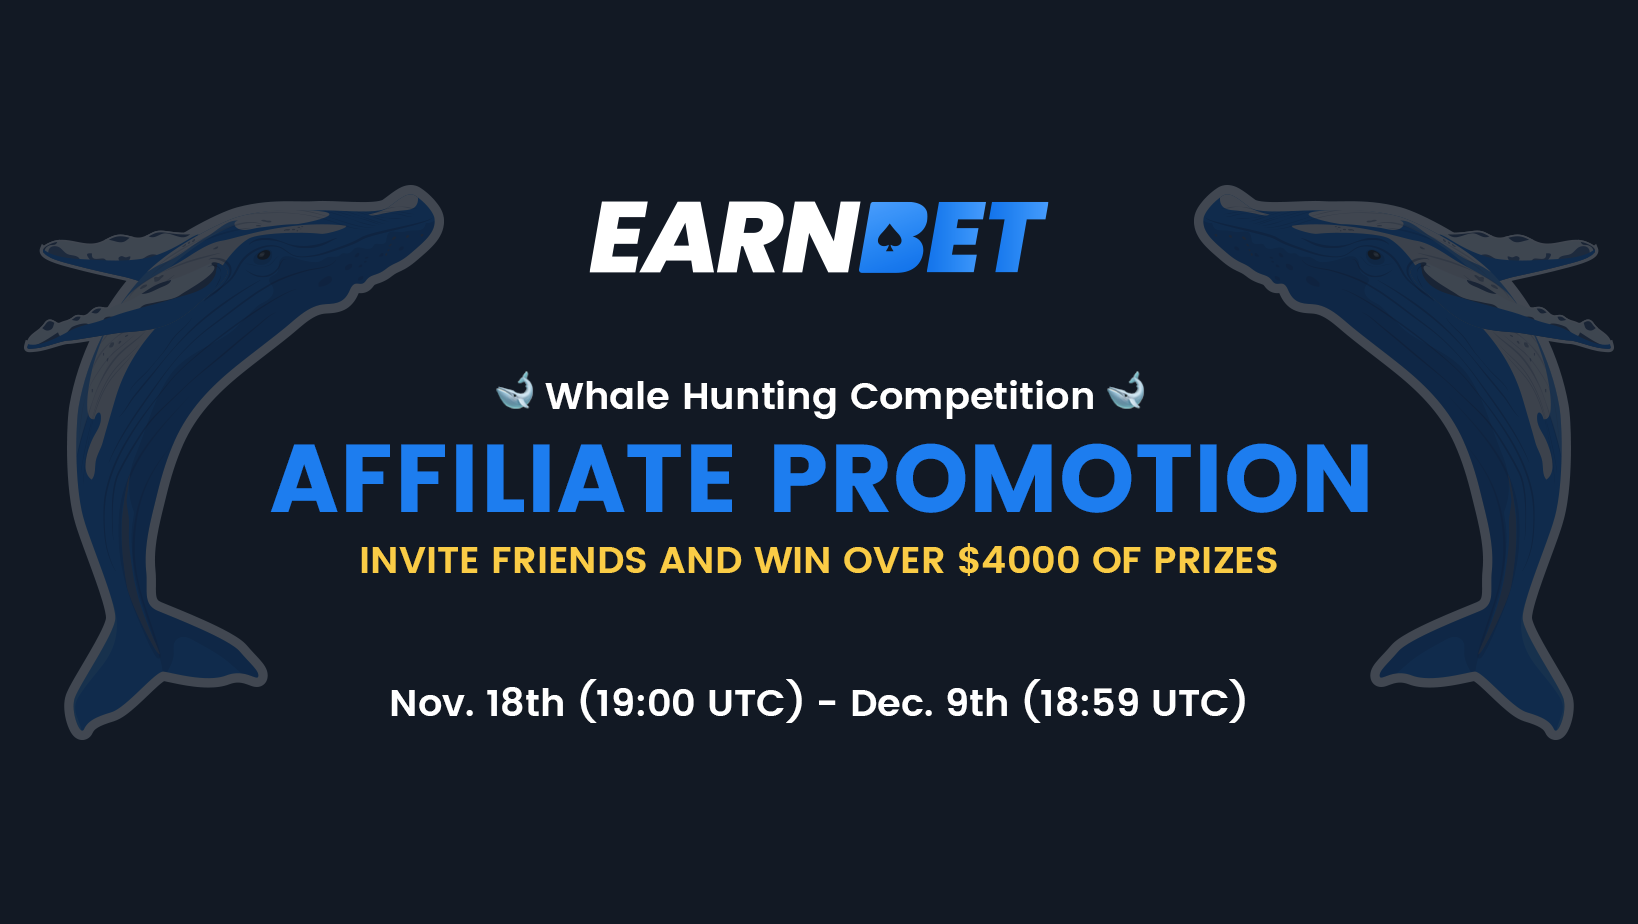 EarnBet Affiliate Promotion